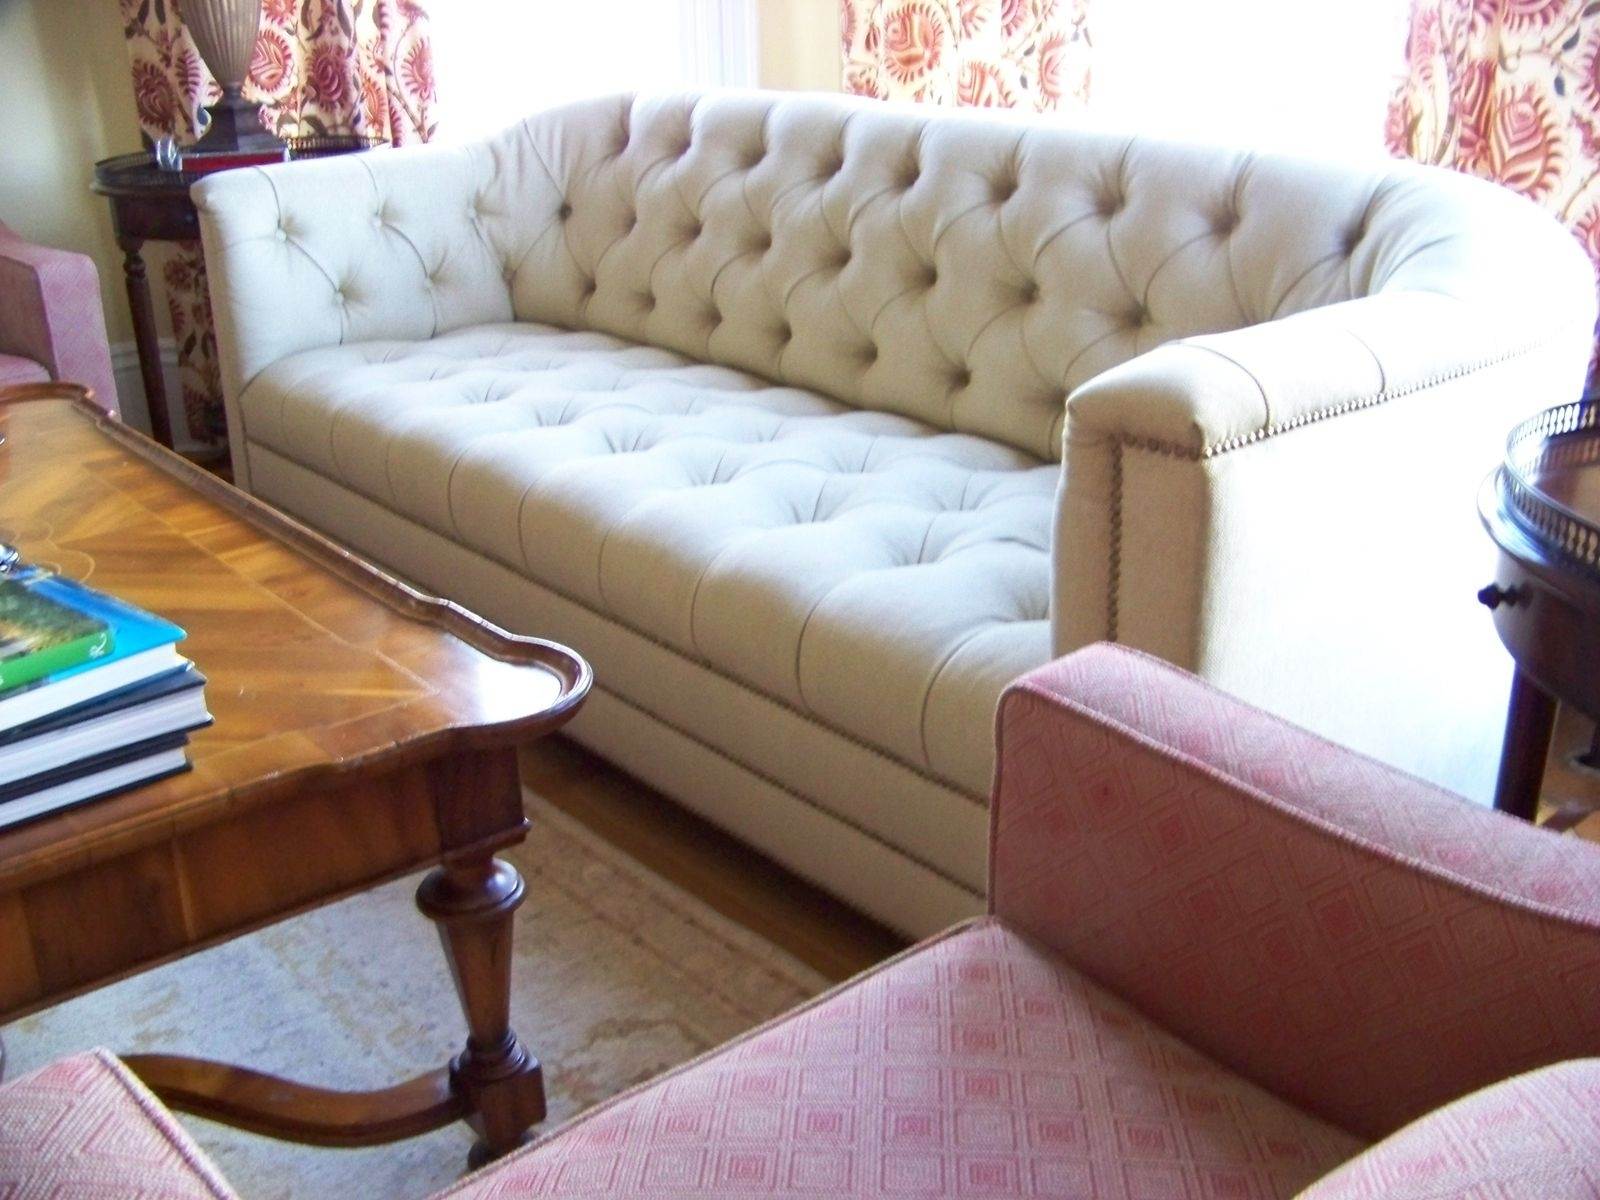 Loveseat : Circular Sofas And Loveseats Ashley Furniture Denver with regard to Ashley Tufted Sofas (Image 4 of 10)